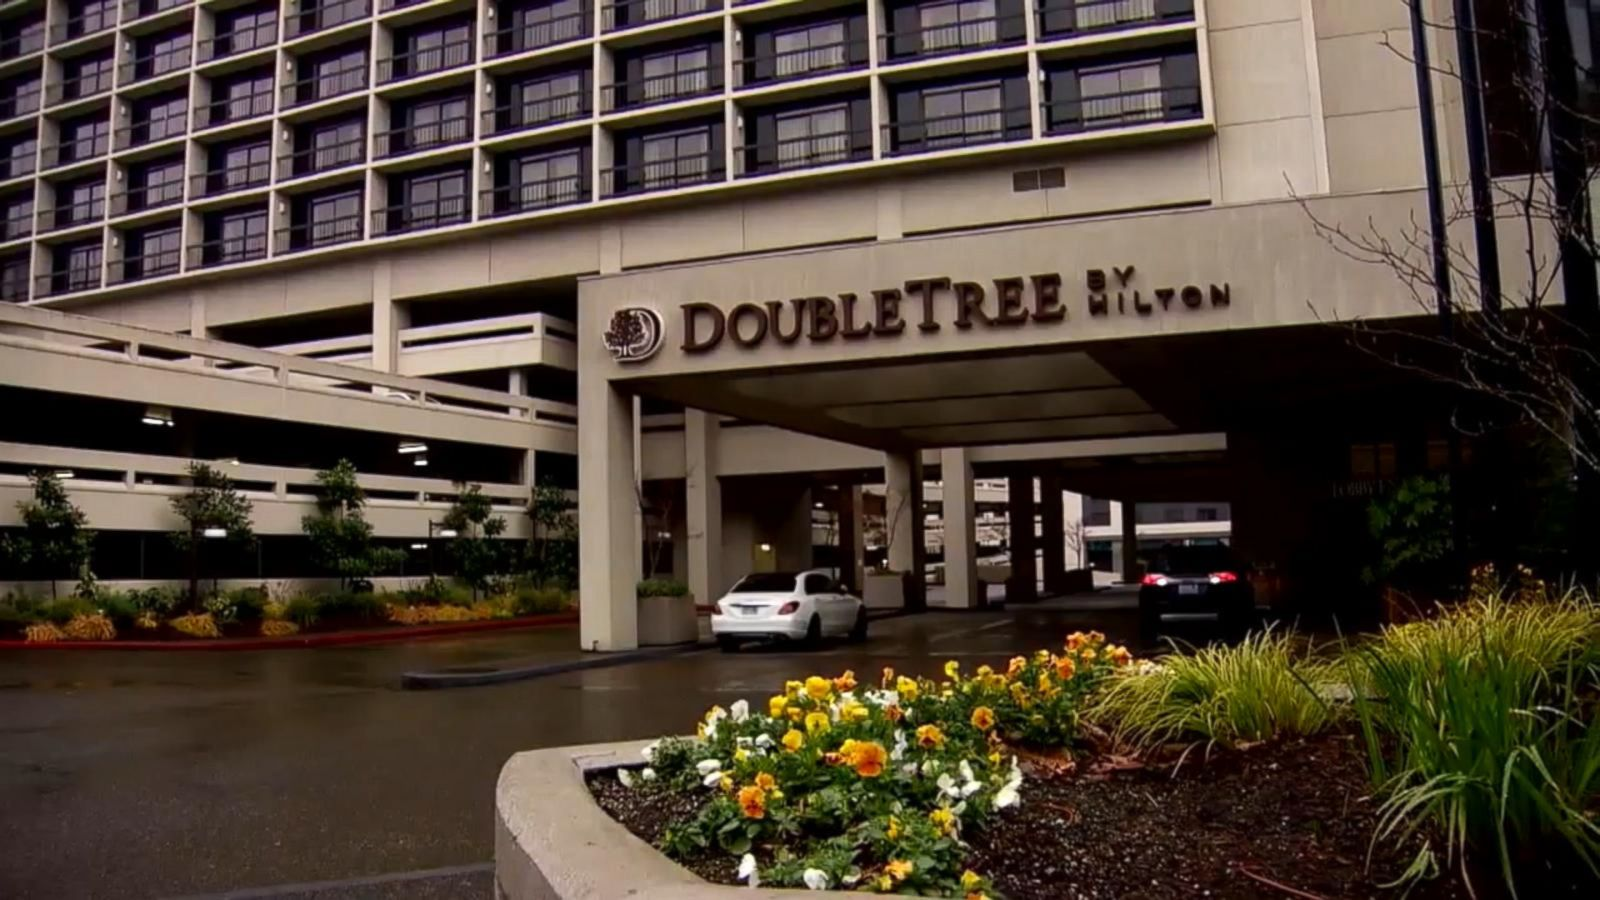 Portland hotel workers who asked black guest to leave fired